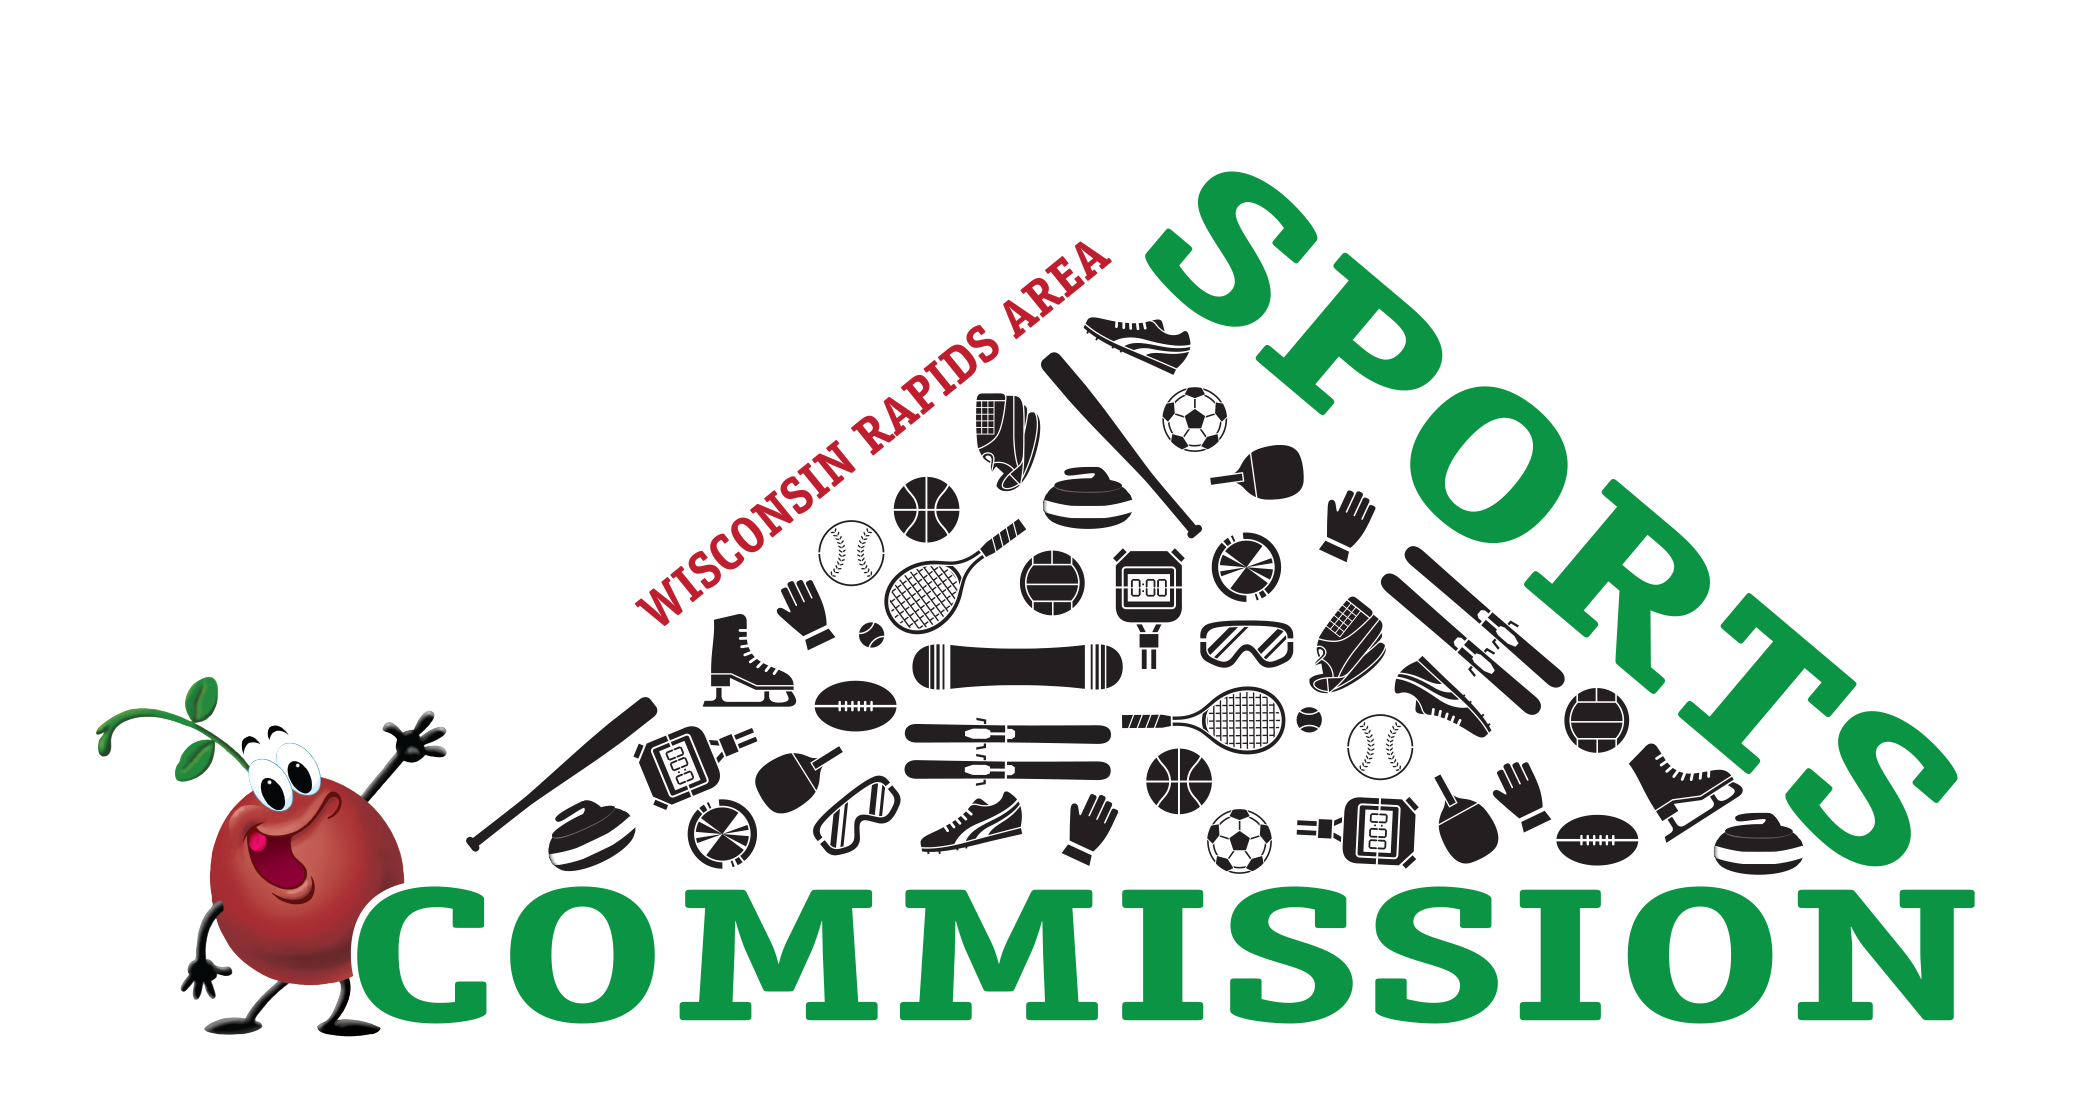 sports-commission-logo.png